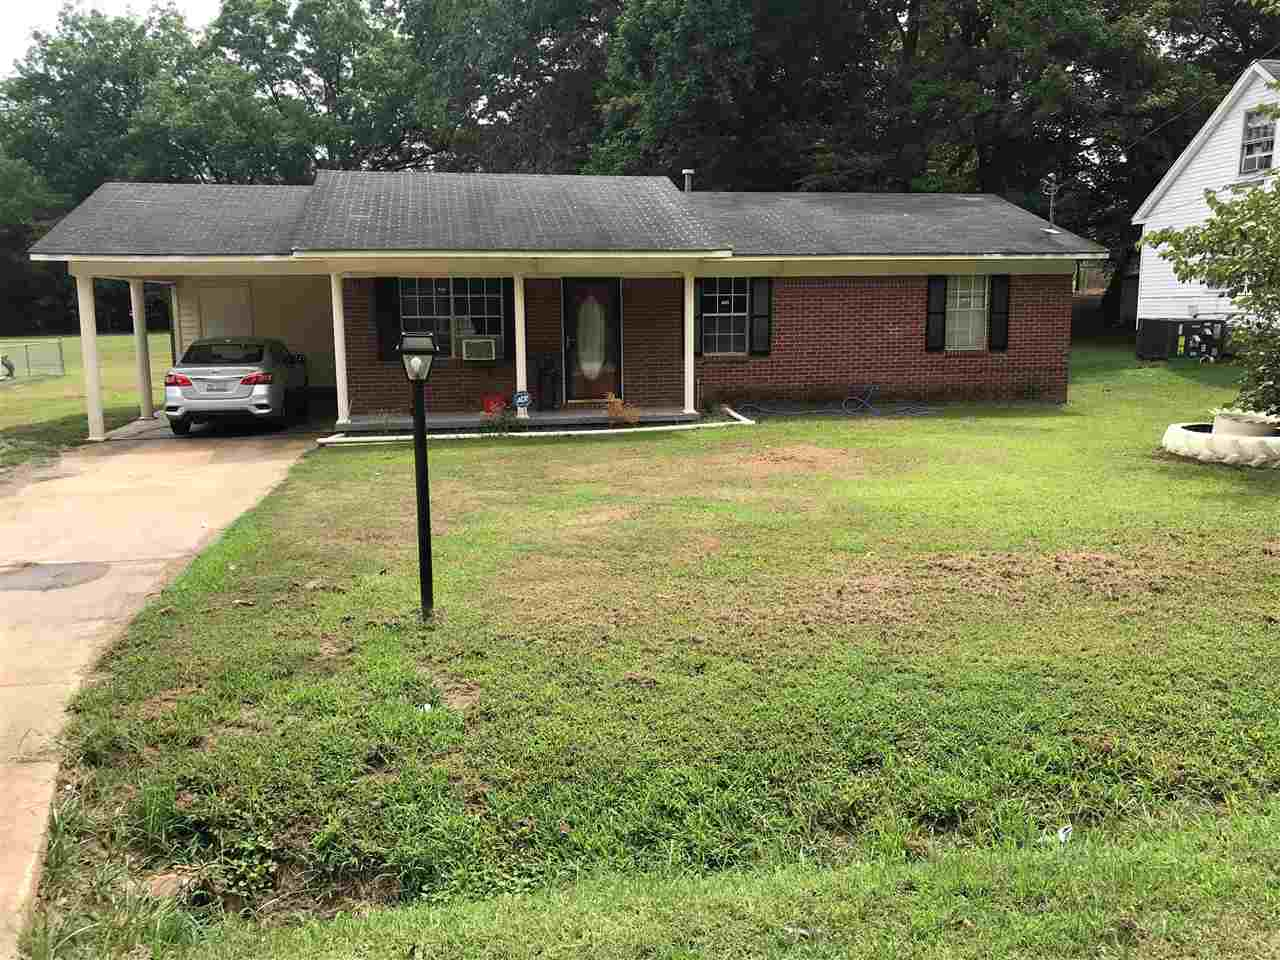 Property for sale at 216 Shelton St, Covington,  Tennessee 38019